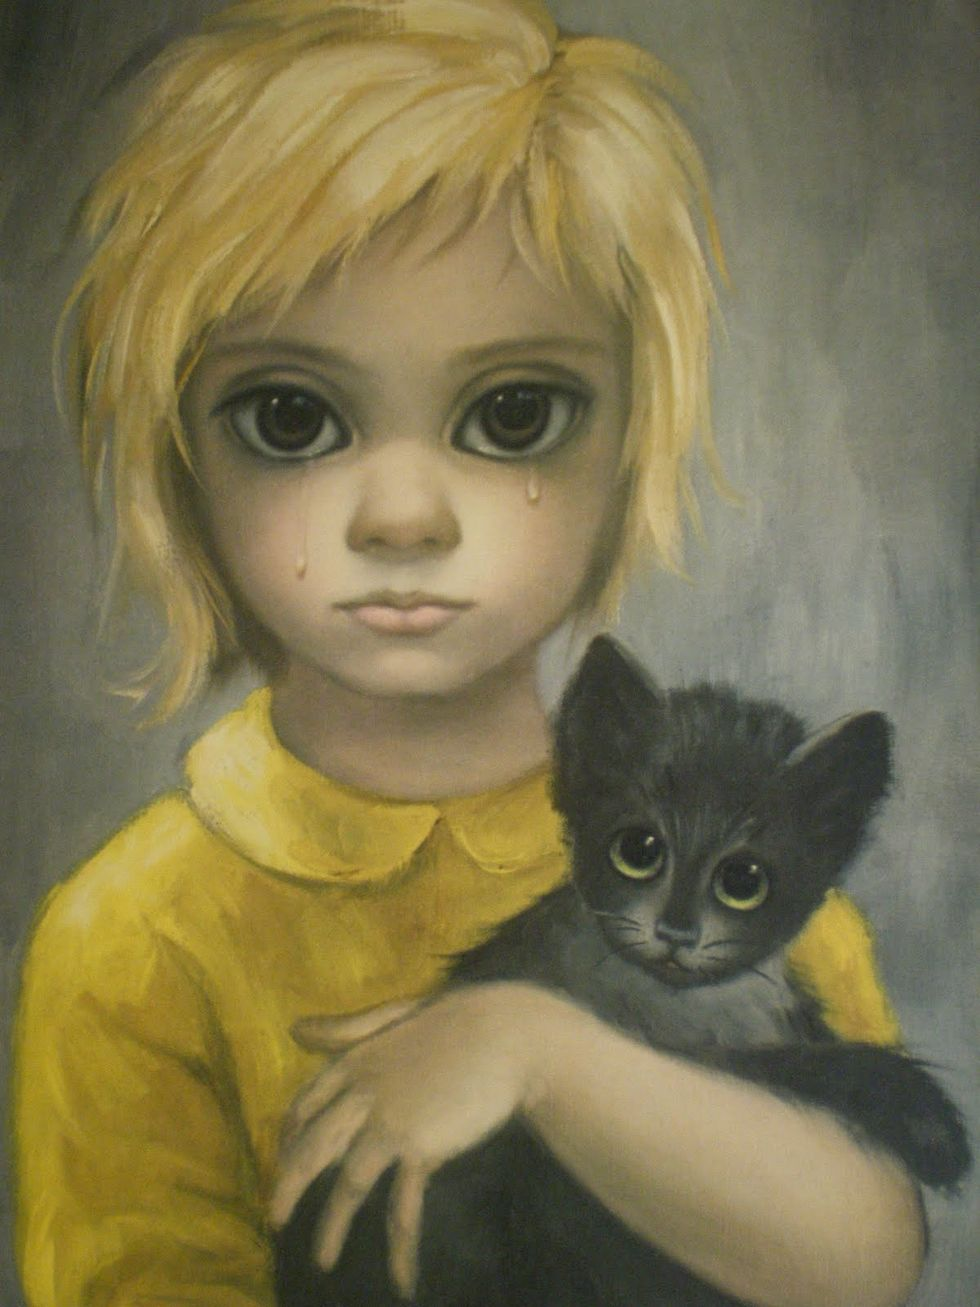 Girls That Look Like Skrillex + Reese Witherspoon as Margaret Keane = Eight Items or Less